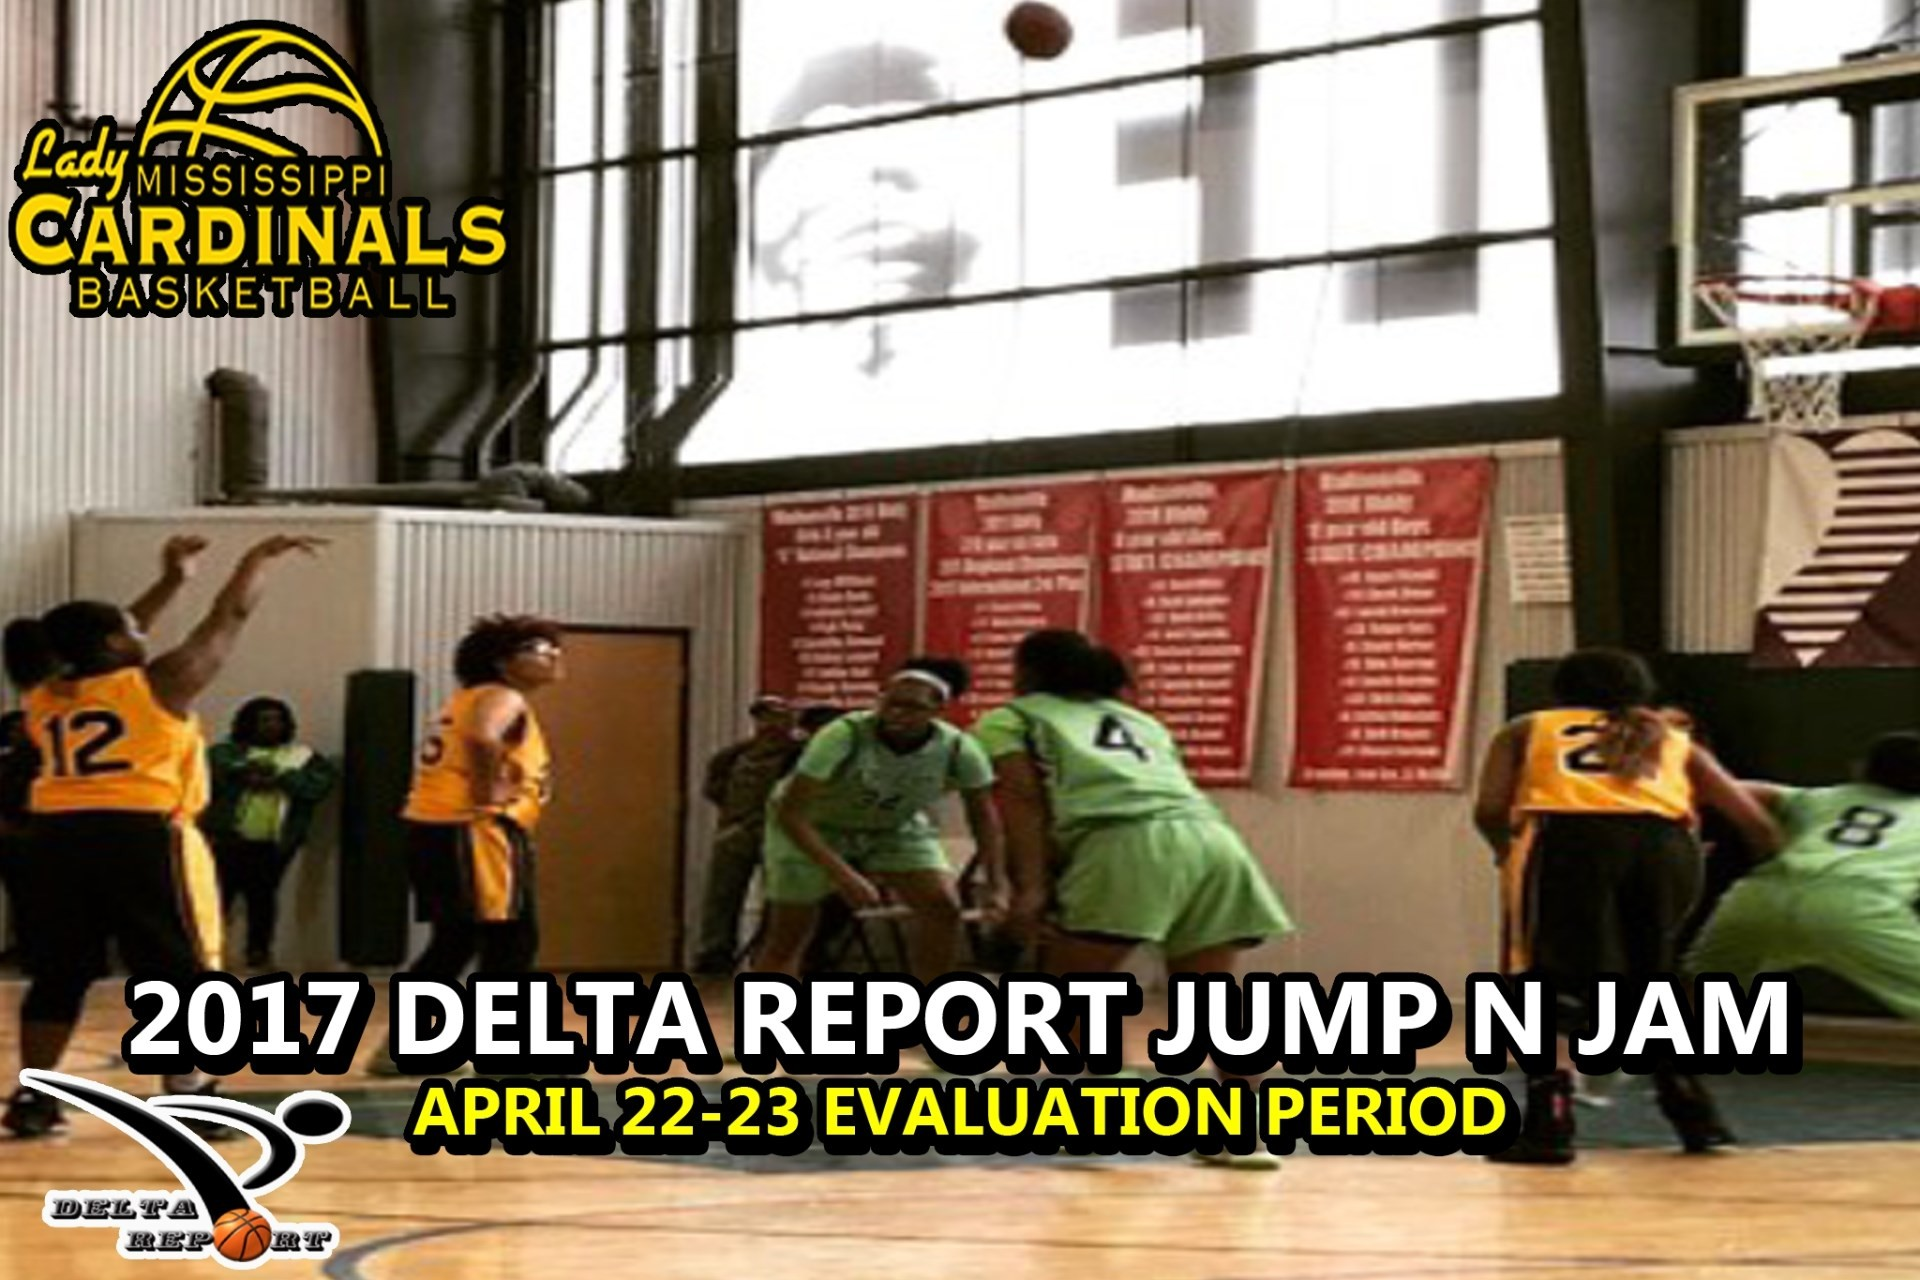 2017 MLC JUMP N JAM EVALUATION PERIOD